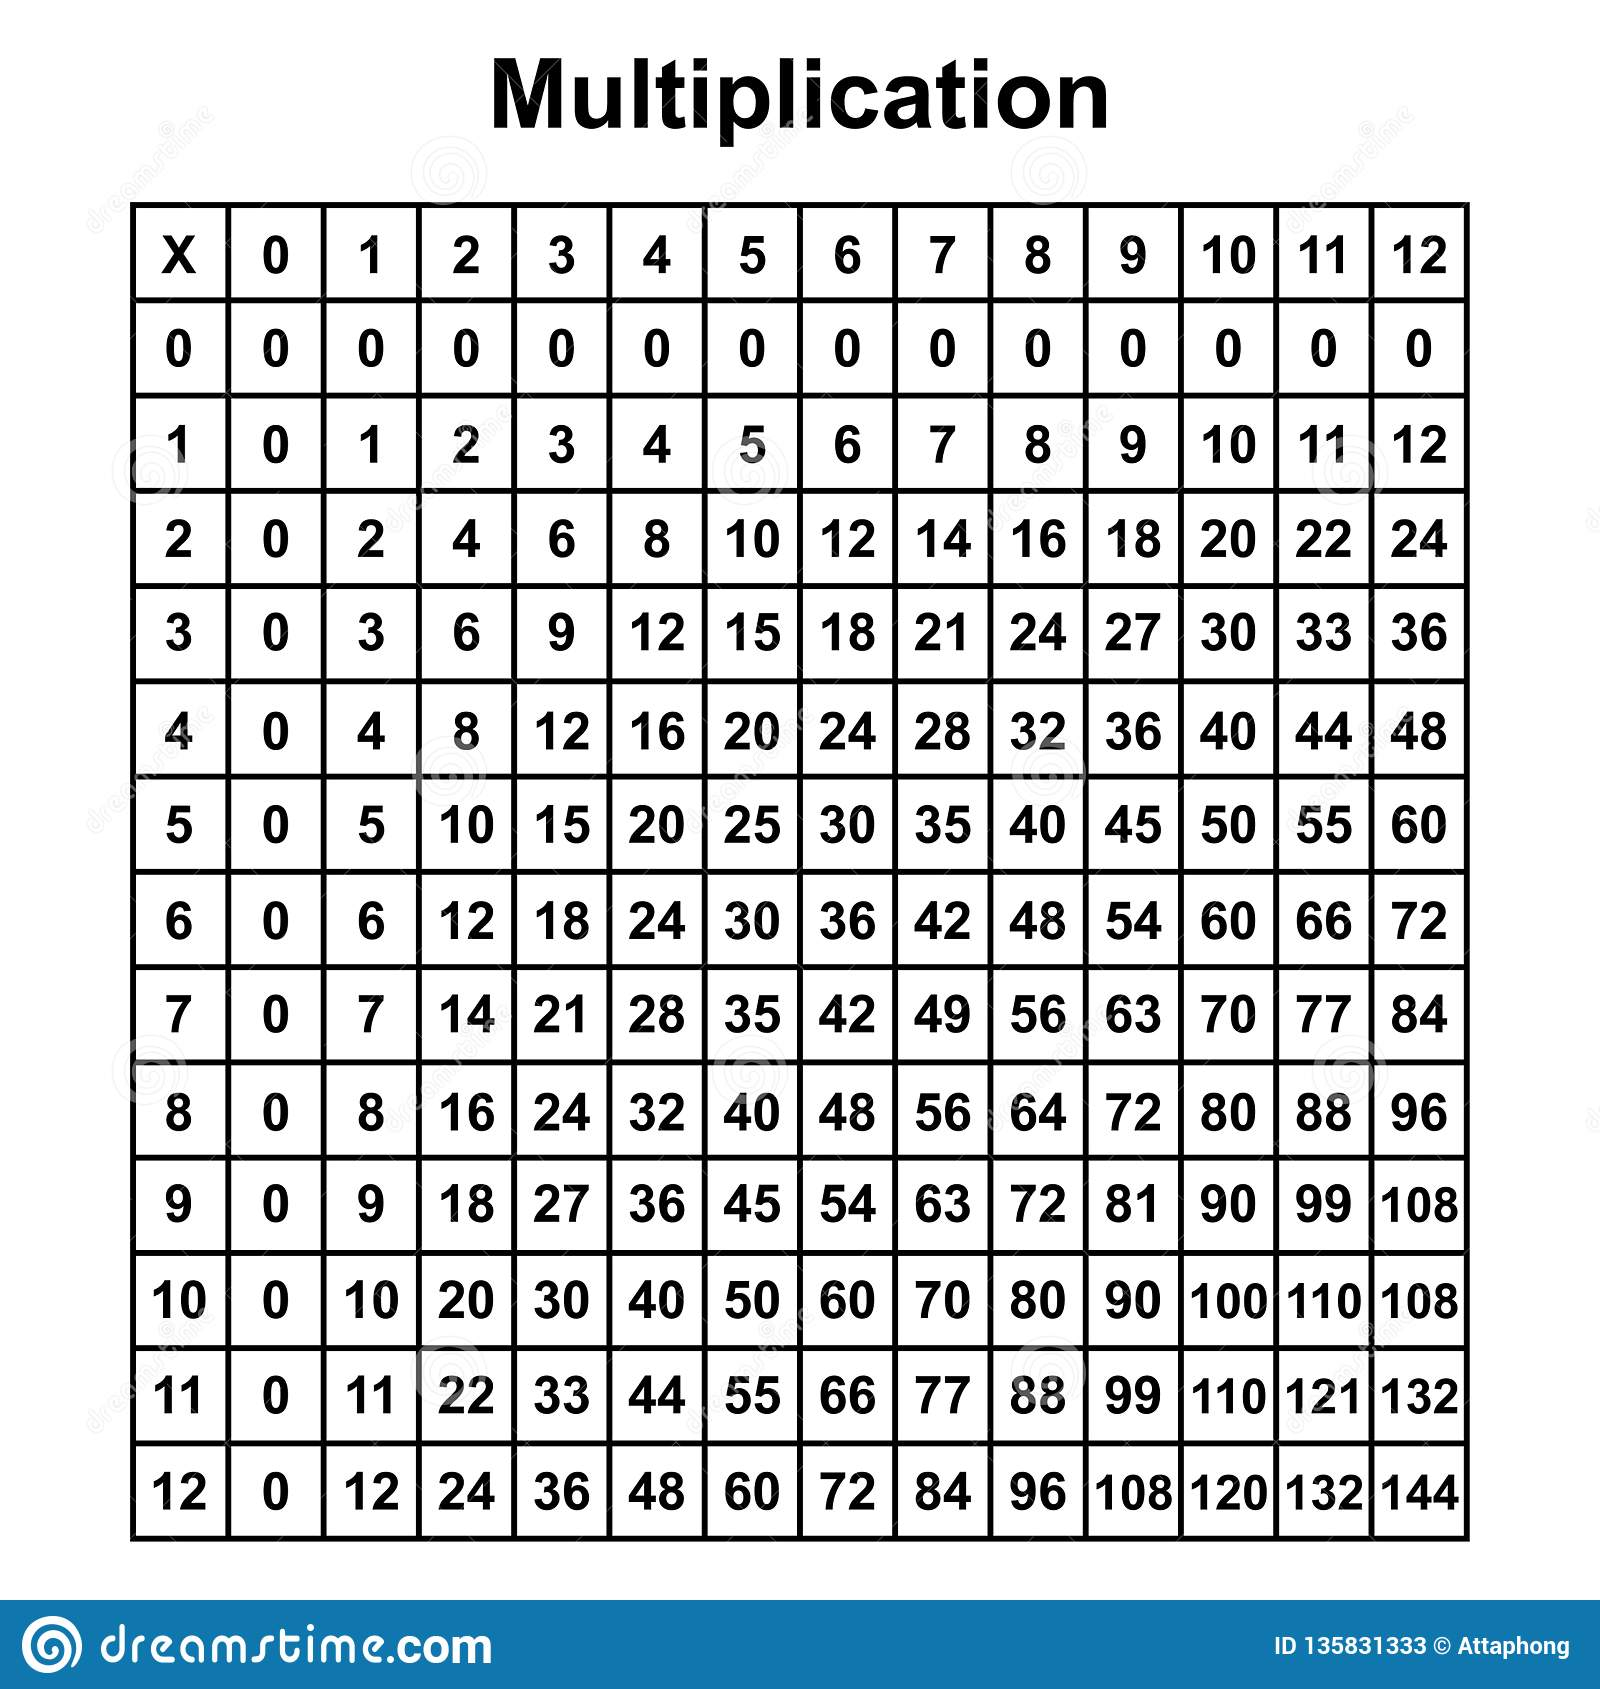 Multiplication Table Chart Or Multiplication Table Printable